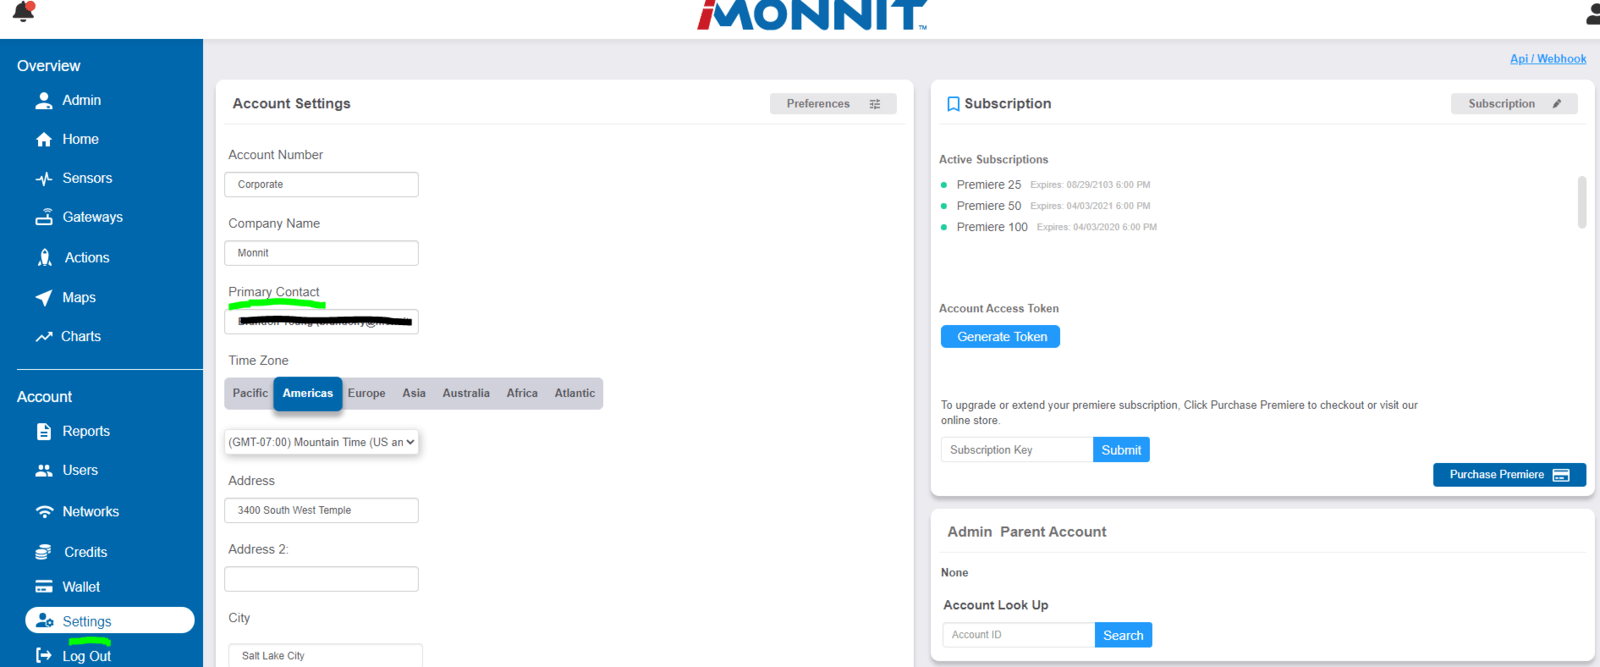 Primary Contact in Account Settings